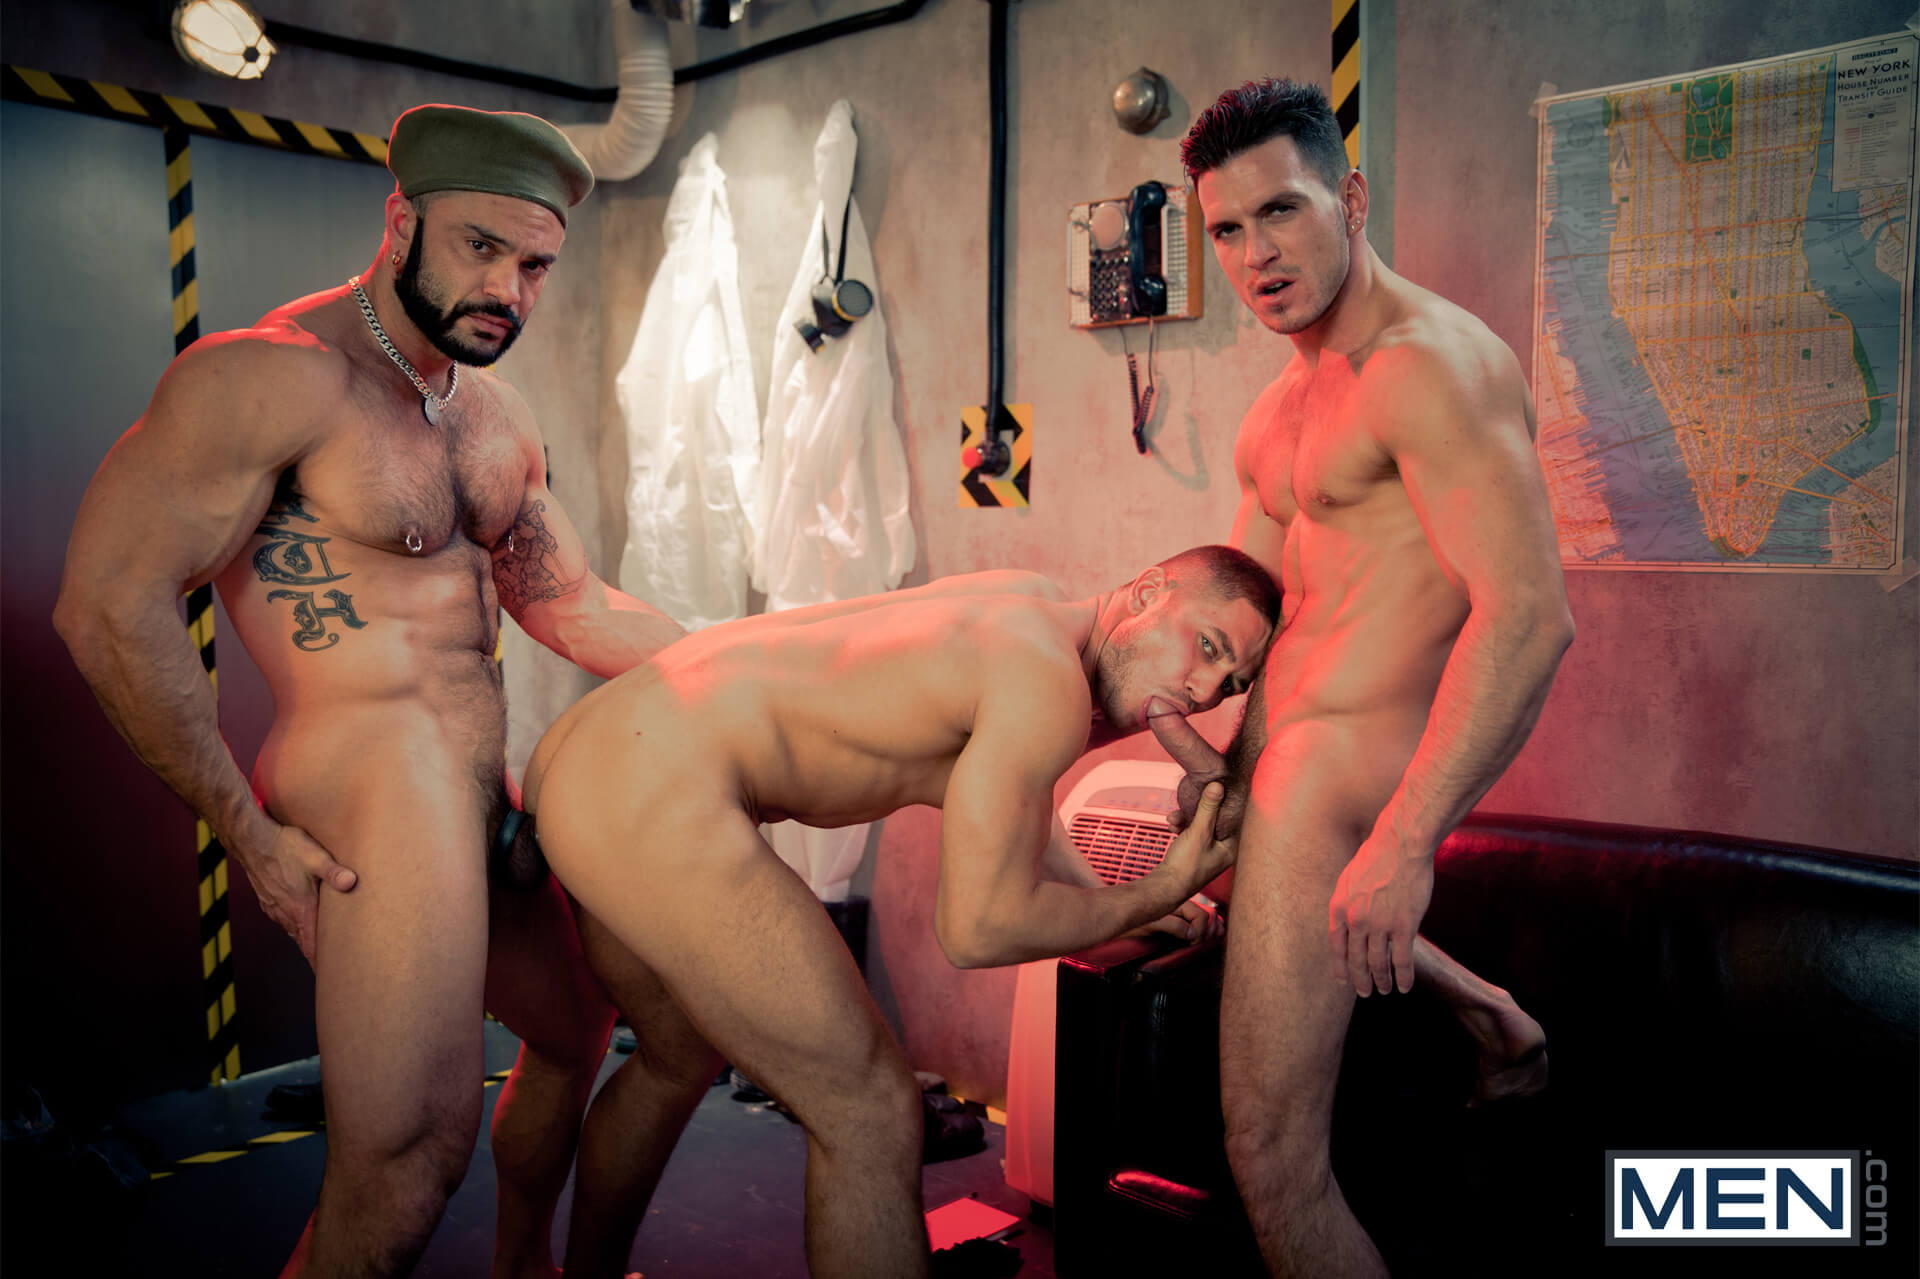 men drill my hole the end part 2 dato foland paddy obrian rogan richards gay porn blog image 15